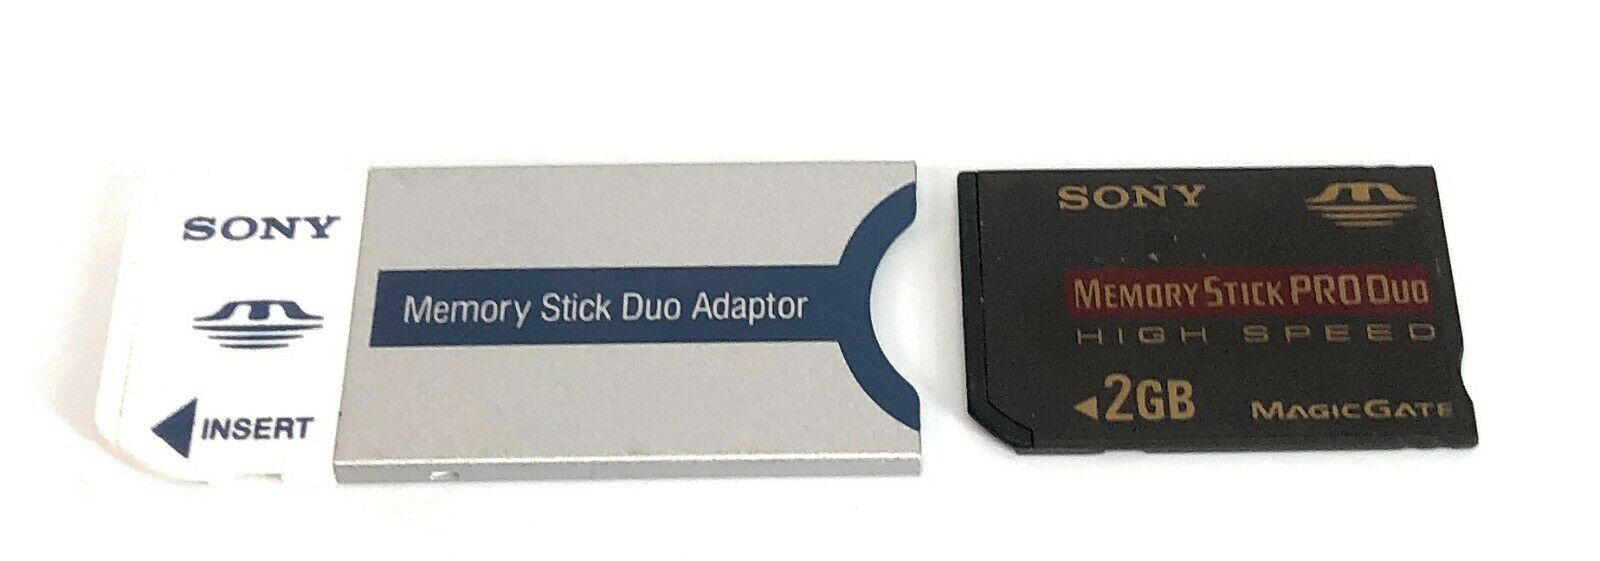 Sony Memory Stick PRO Duo 2gb Magic Gate + Adapter MSAC-M2 Genuine New Unboxed